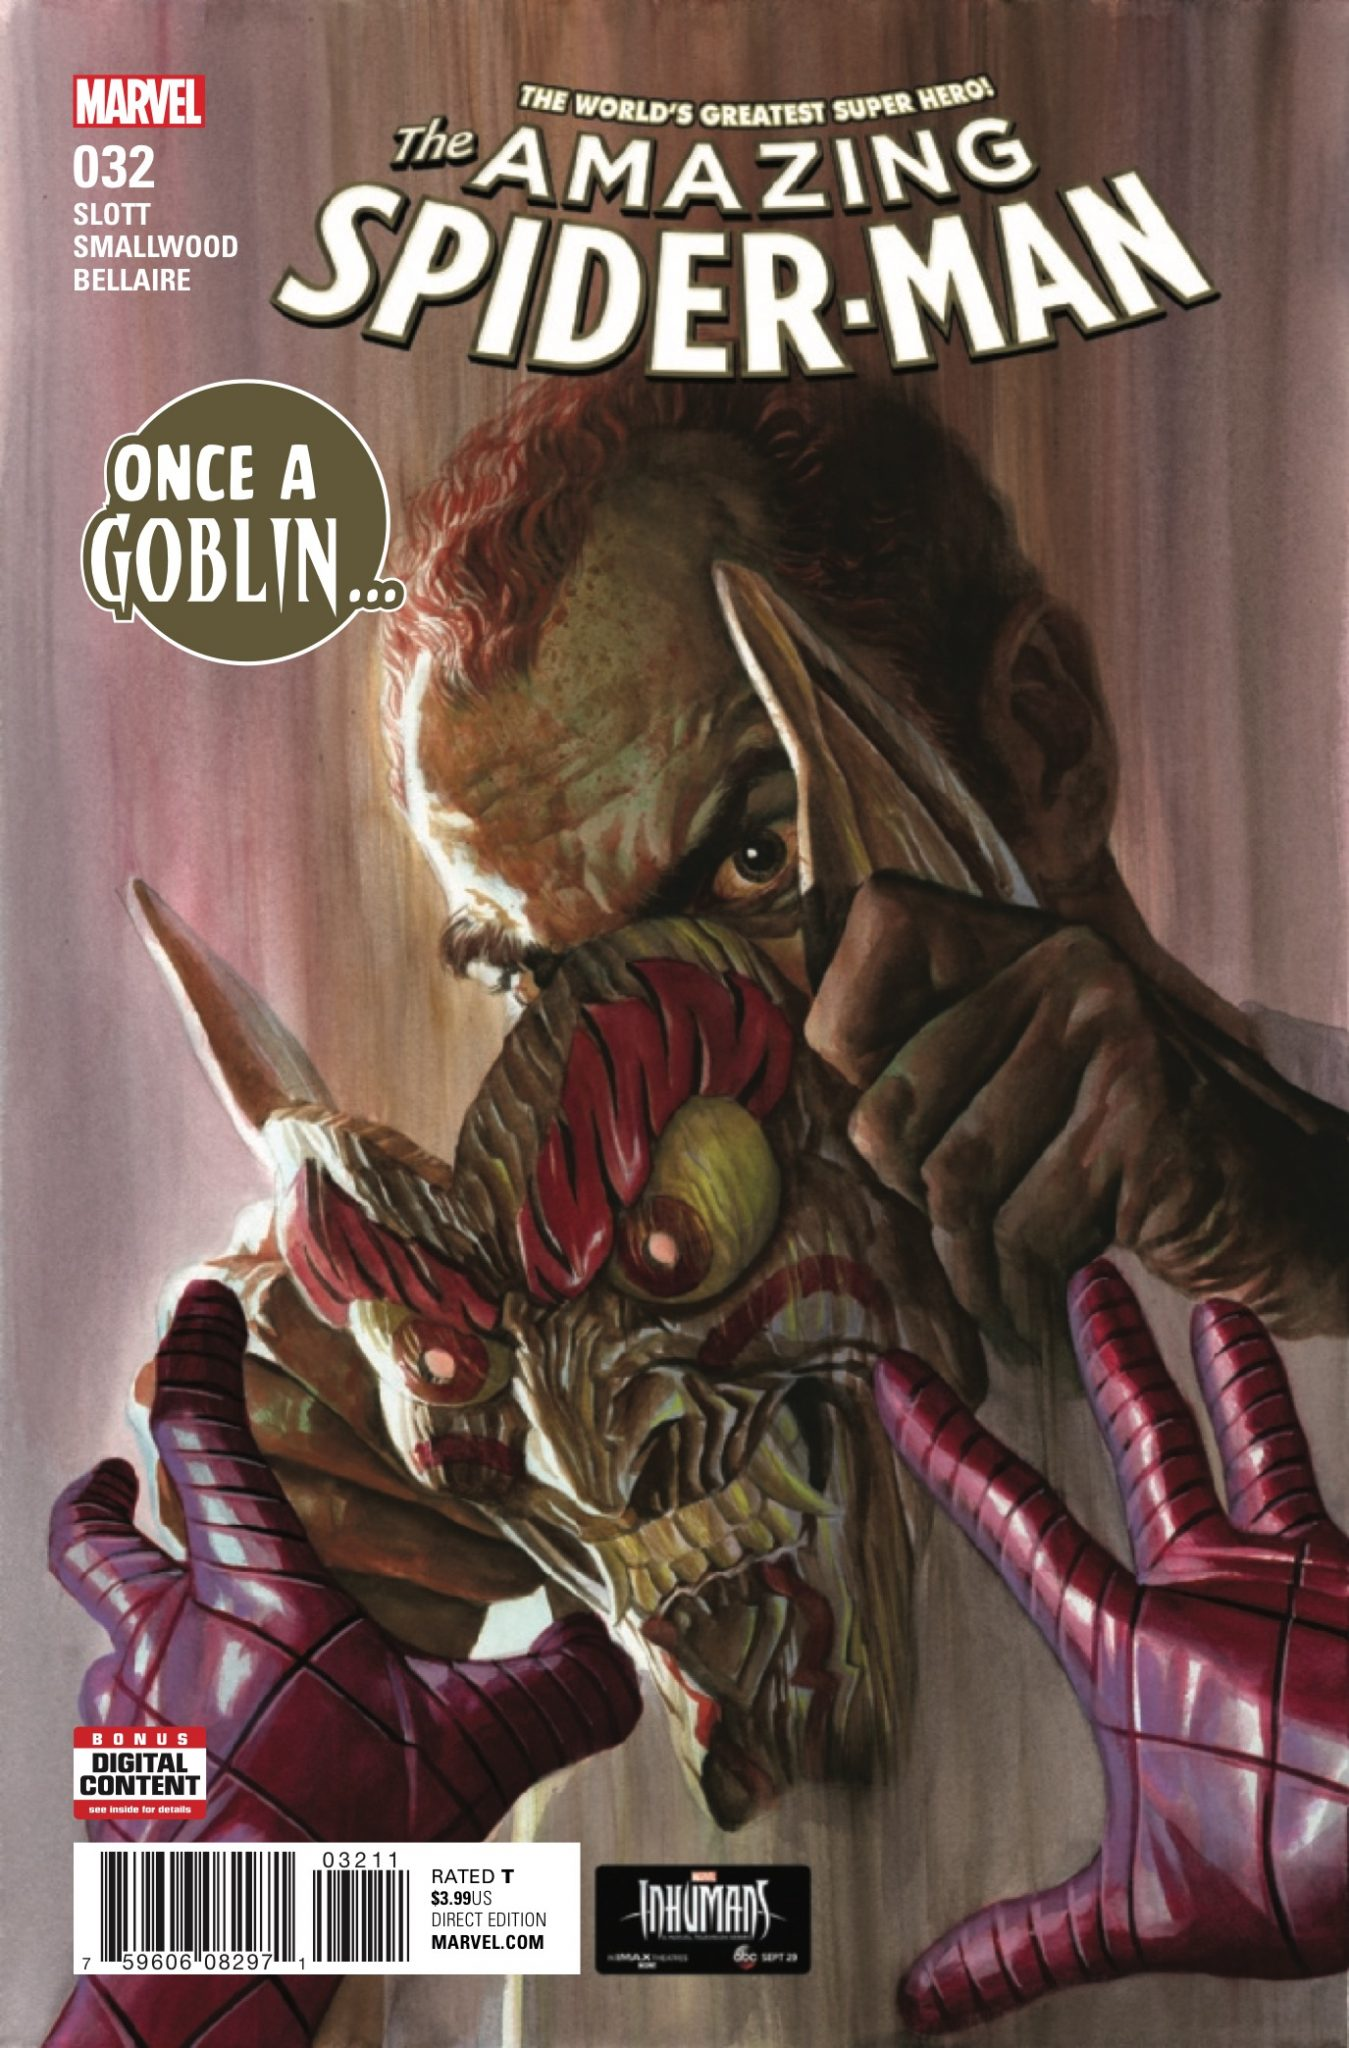 Norman Osborn's goblin-free battle with Spidey didn't go the way he had hoped.